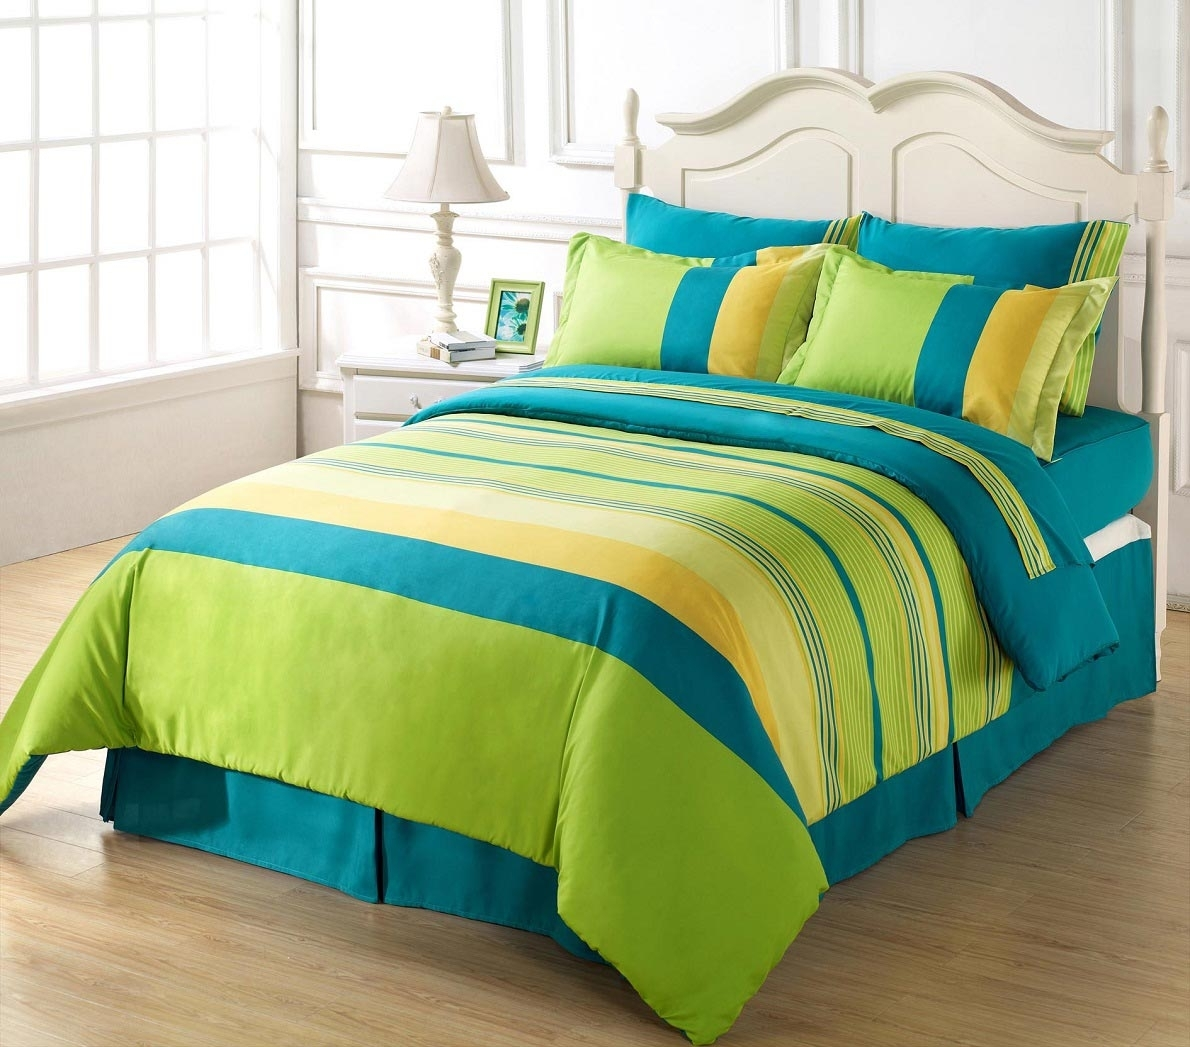 Madison Art Center Design: Lime Green And Blue Sheets